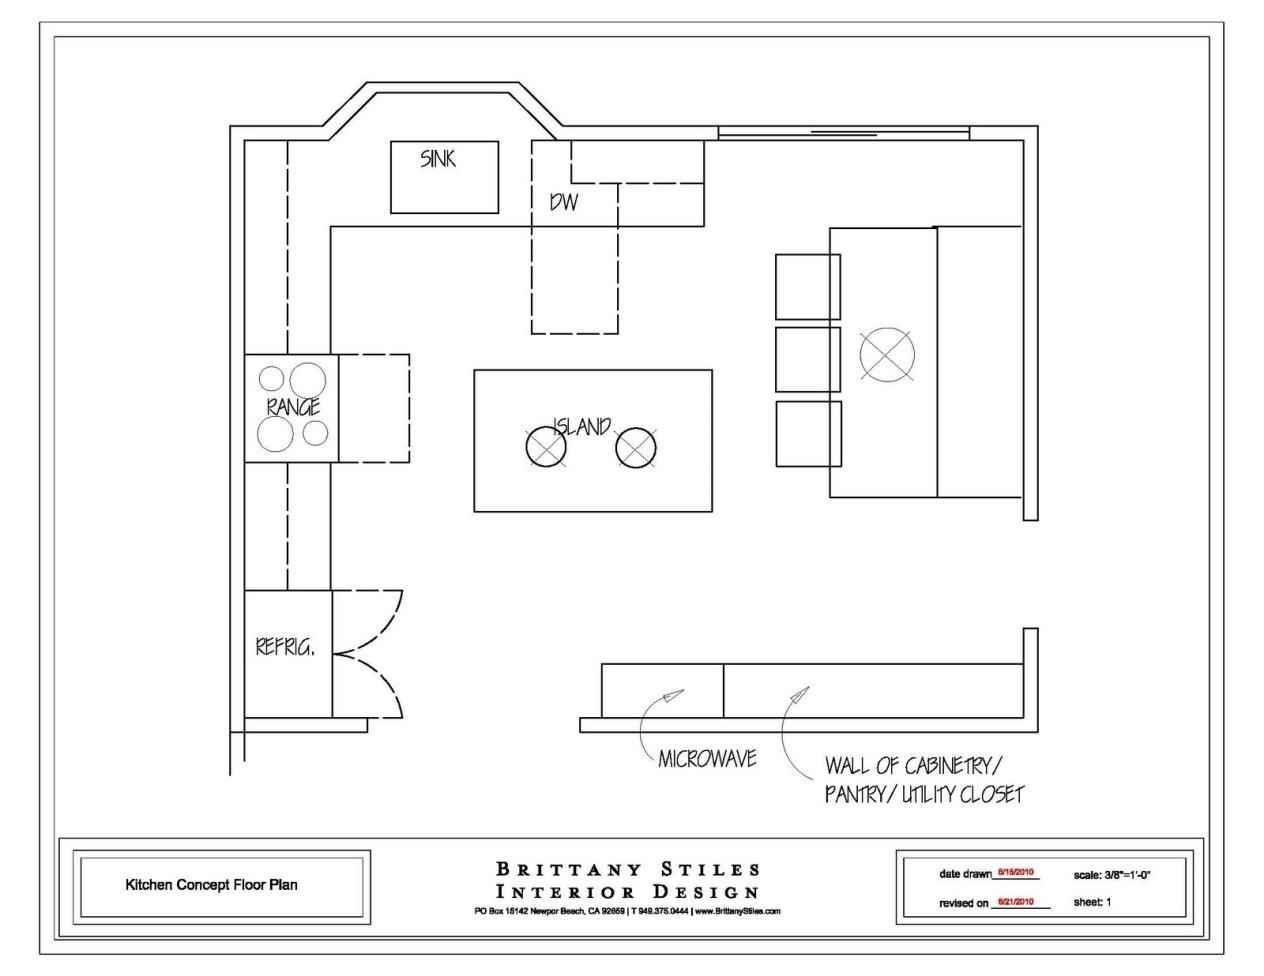 L Shaped Floor Plan Detailed All Type Kitchen Floor Plans Review Small